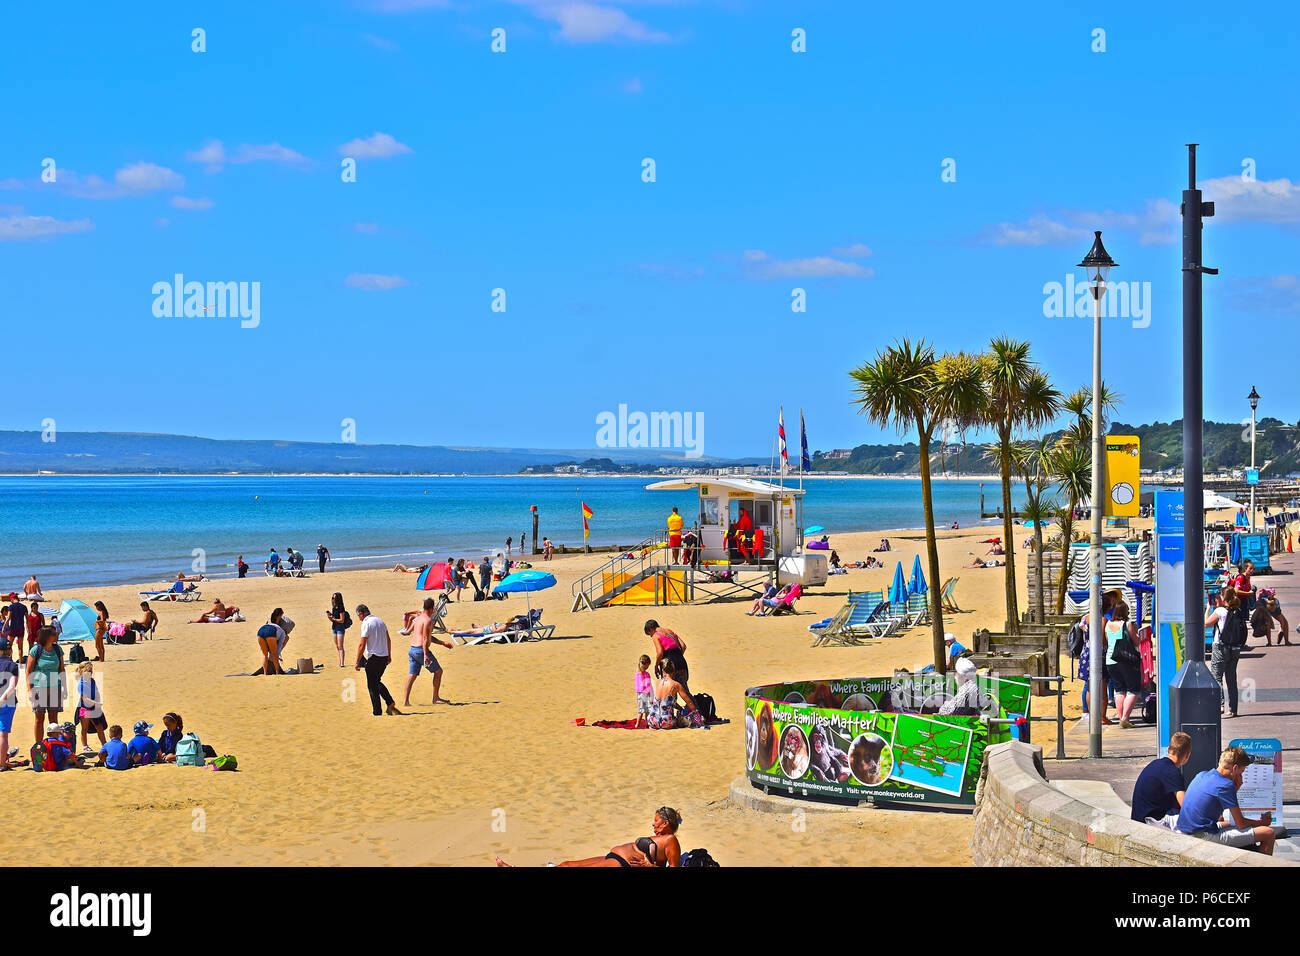 Hot sunny weather & the palm trees give this beach scene a tropical feel as people enjoy the beach next to  Bournemouth Pier in the Summer time - Stock Image